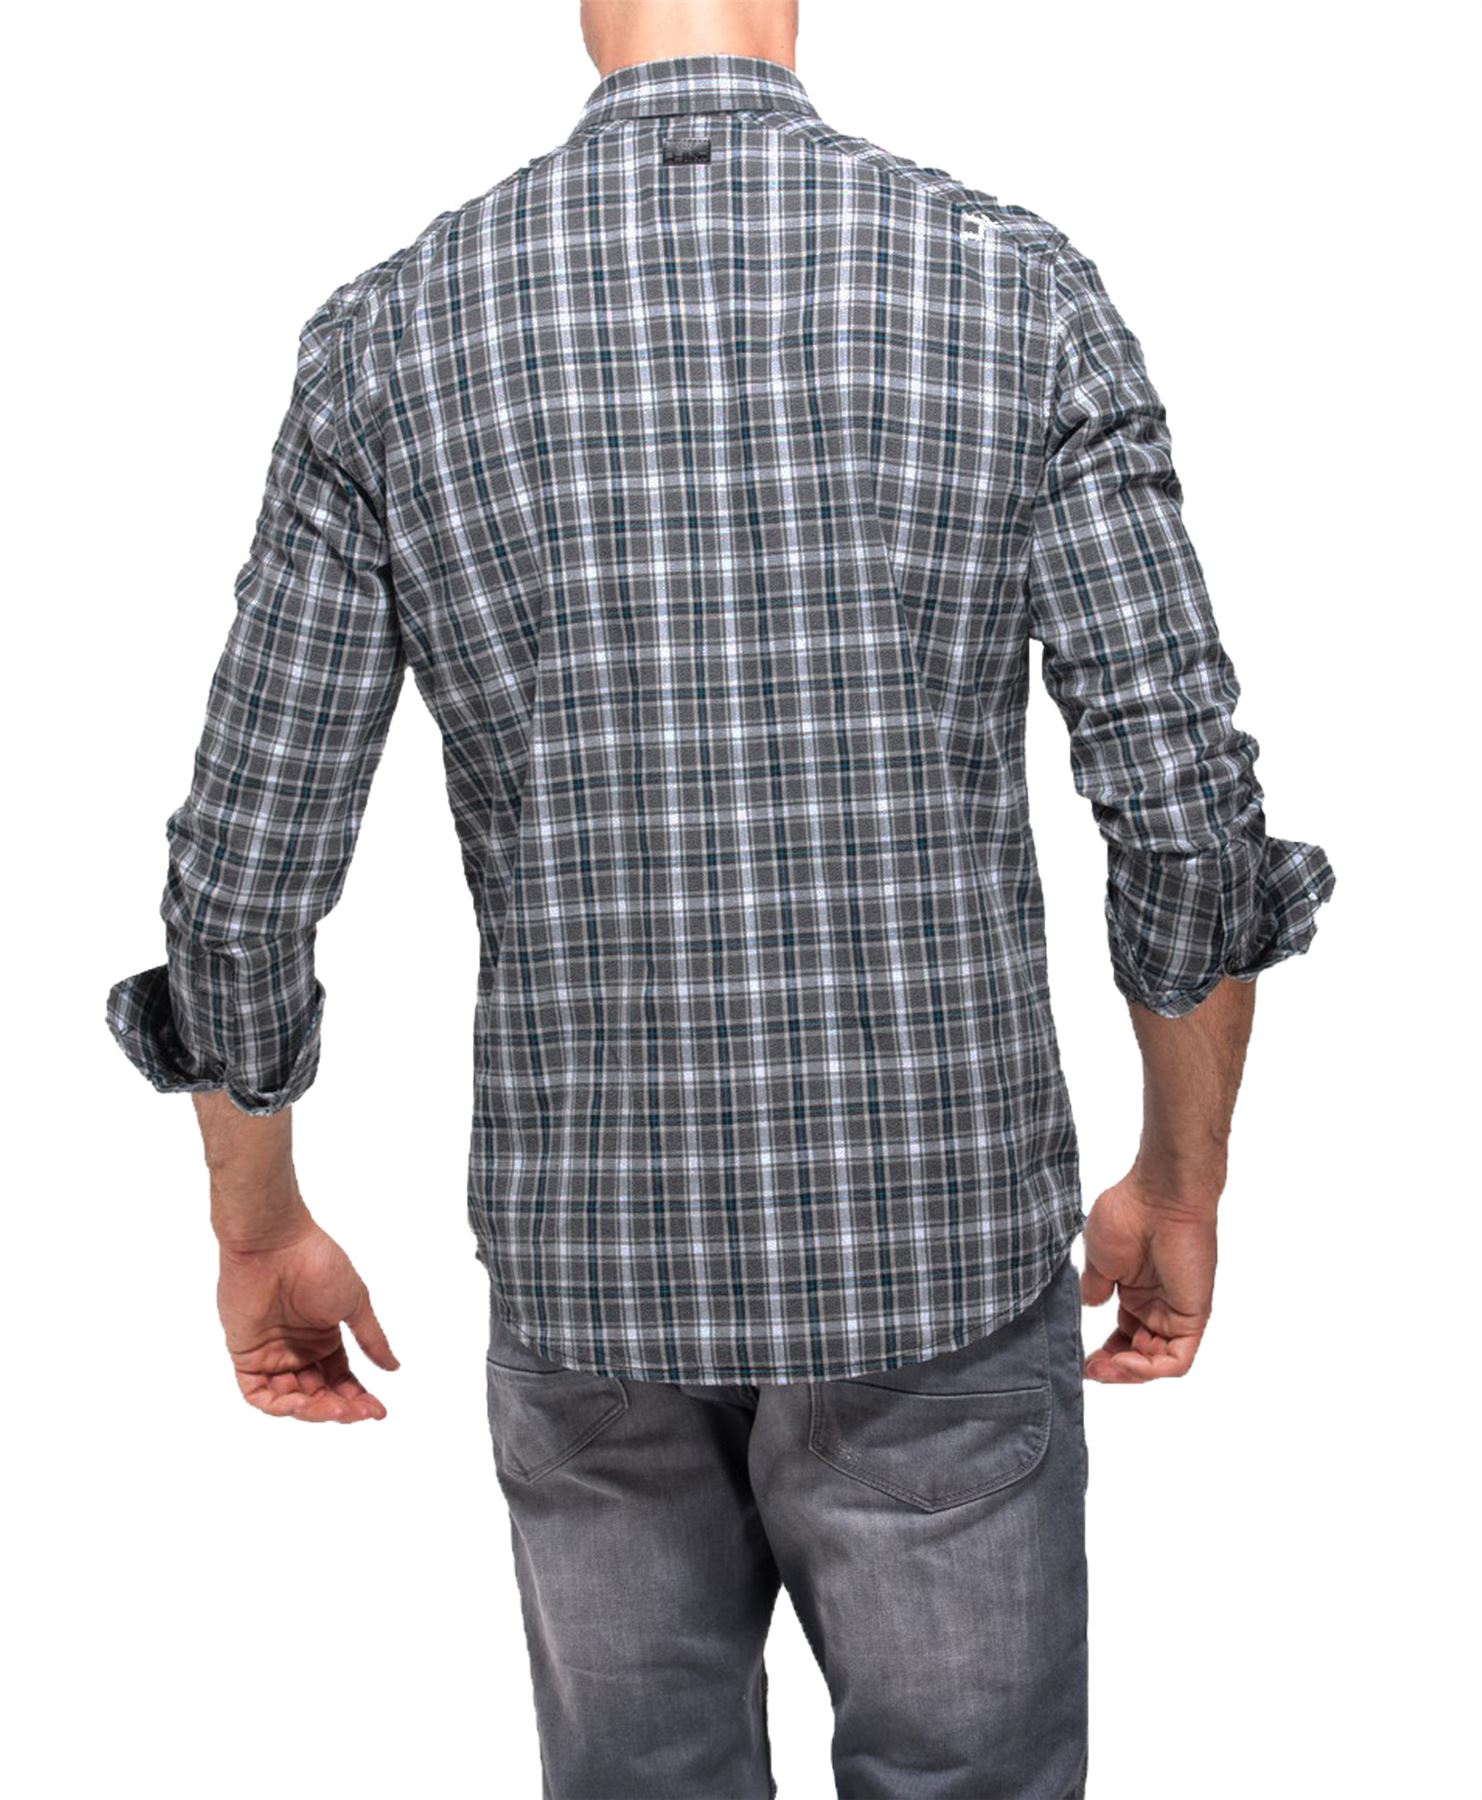 Hombre-Point-Zero-100-Algodon-Camisa-de-cuadros-manga-larga-top-casual-Talla